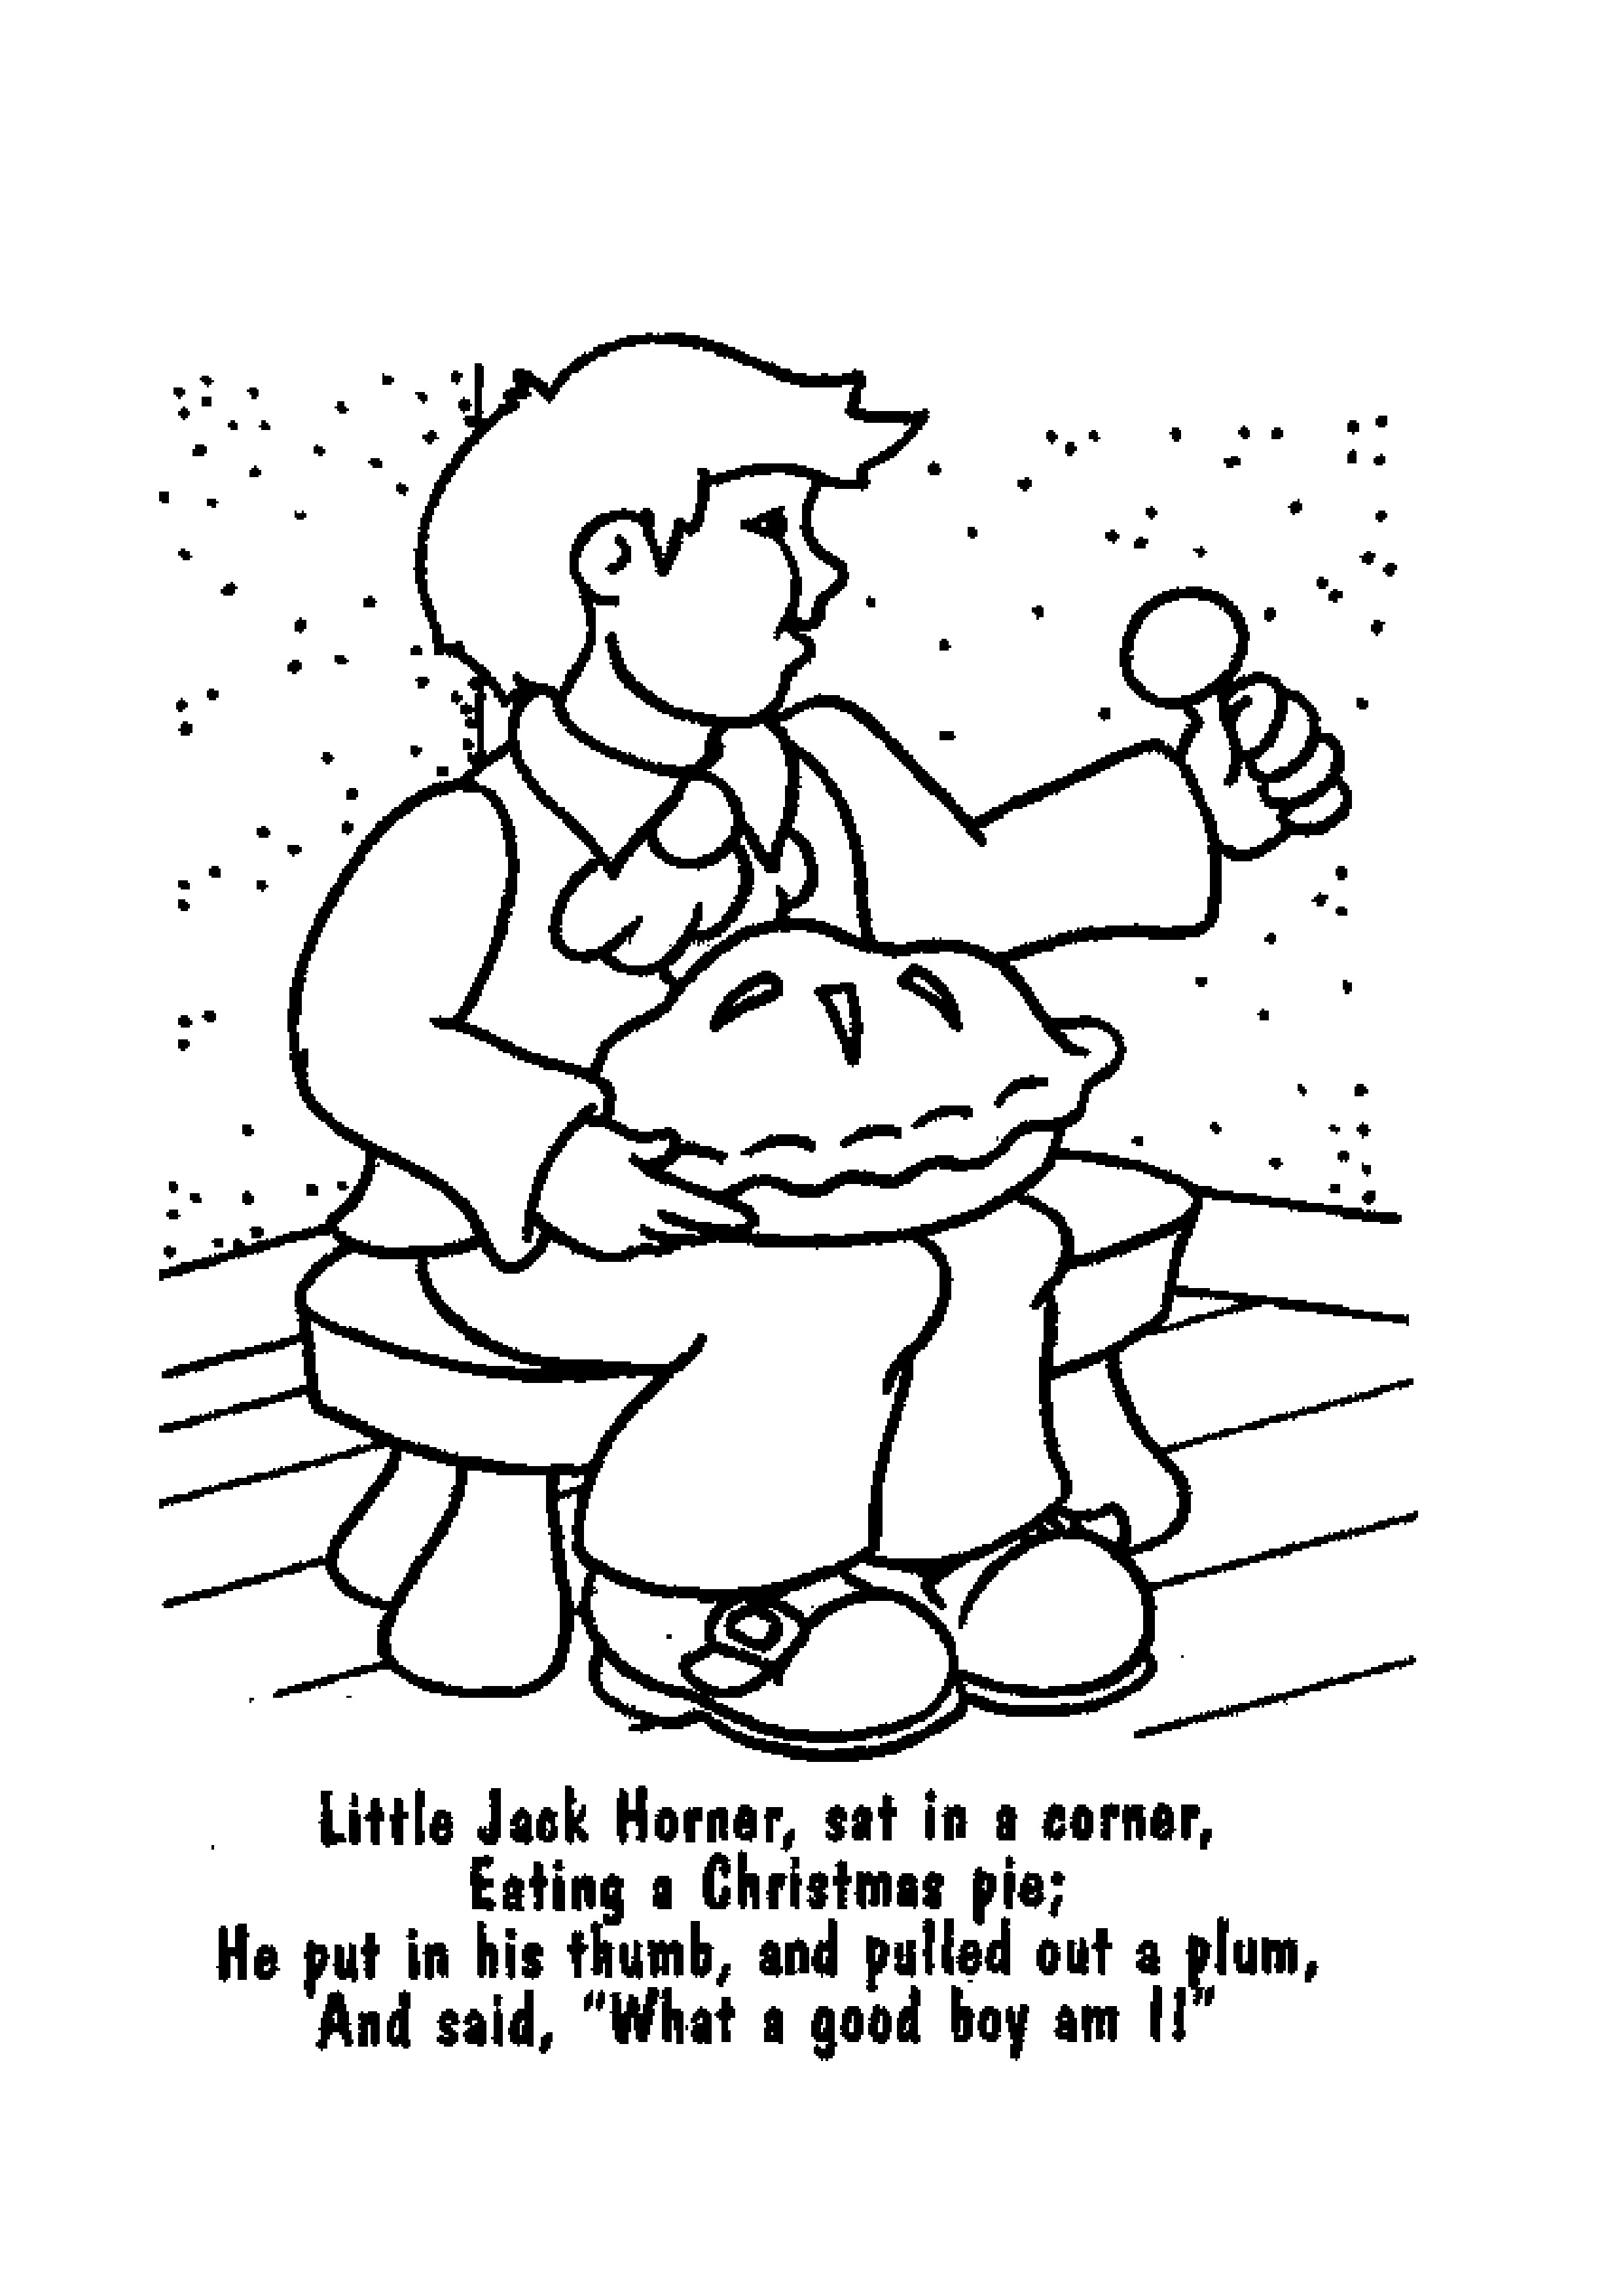 Nursery Rhyme Coloring Pages At Getdrawings Com Free For Personal